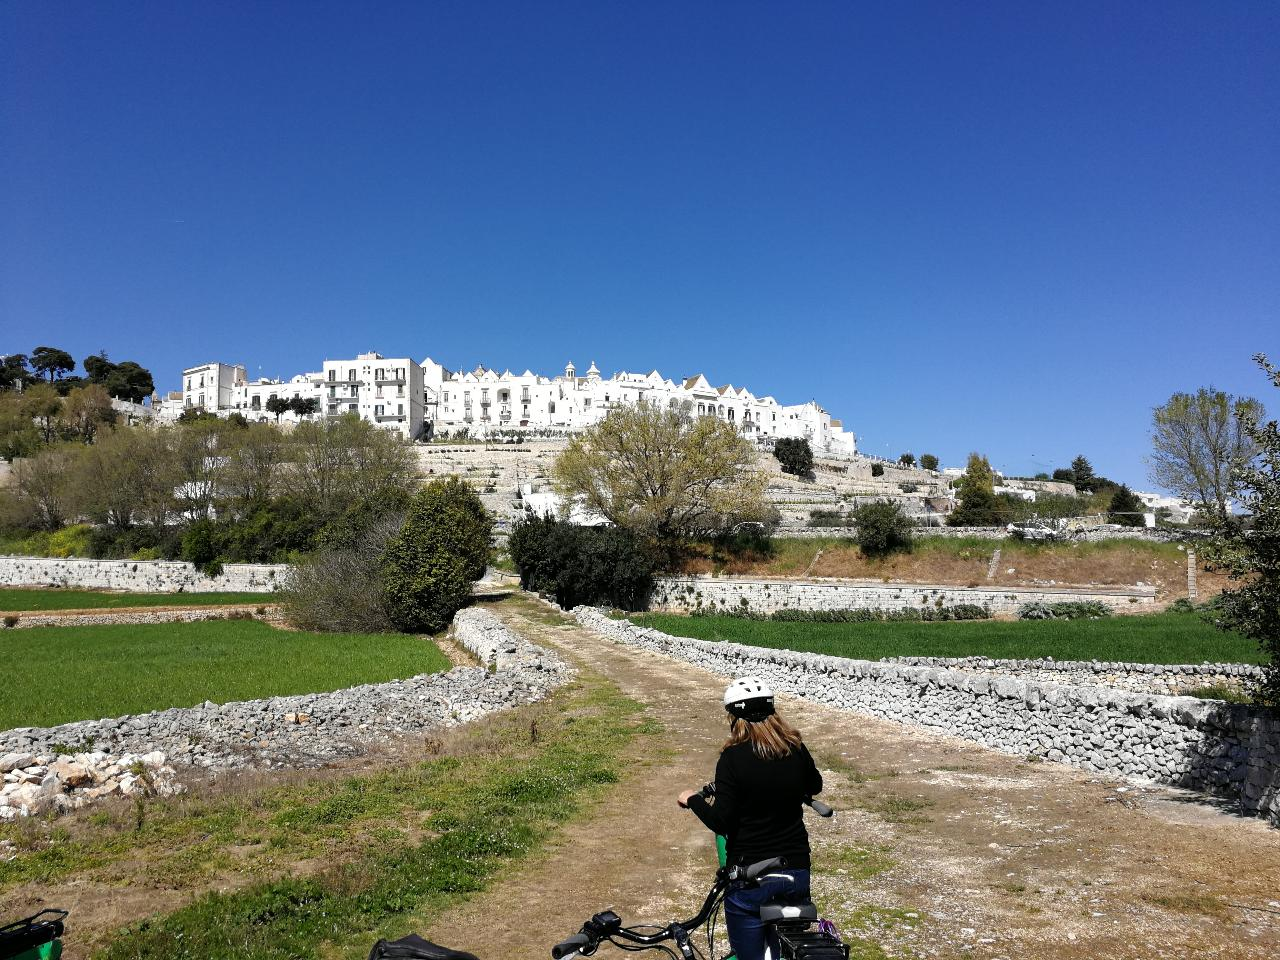 Bike tour: From the old town to the winery